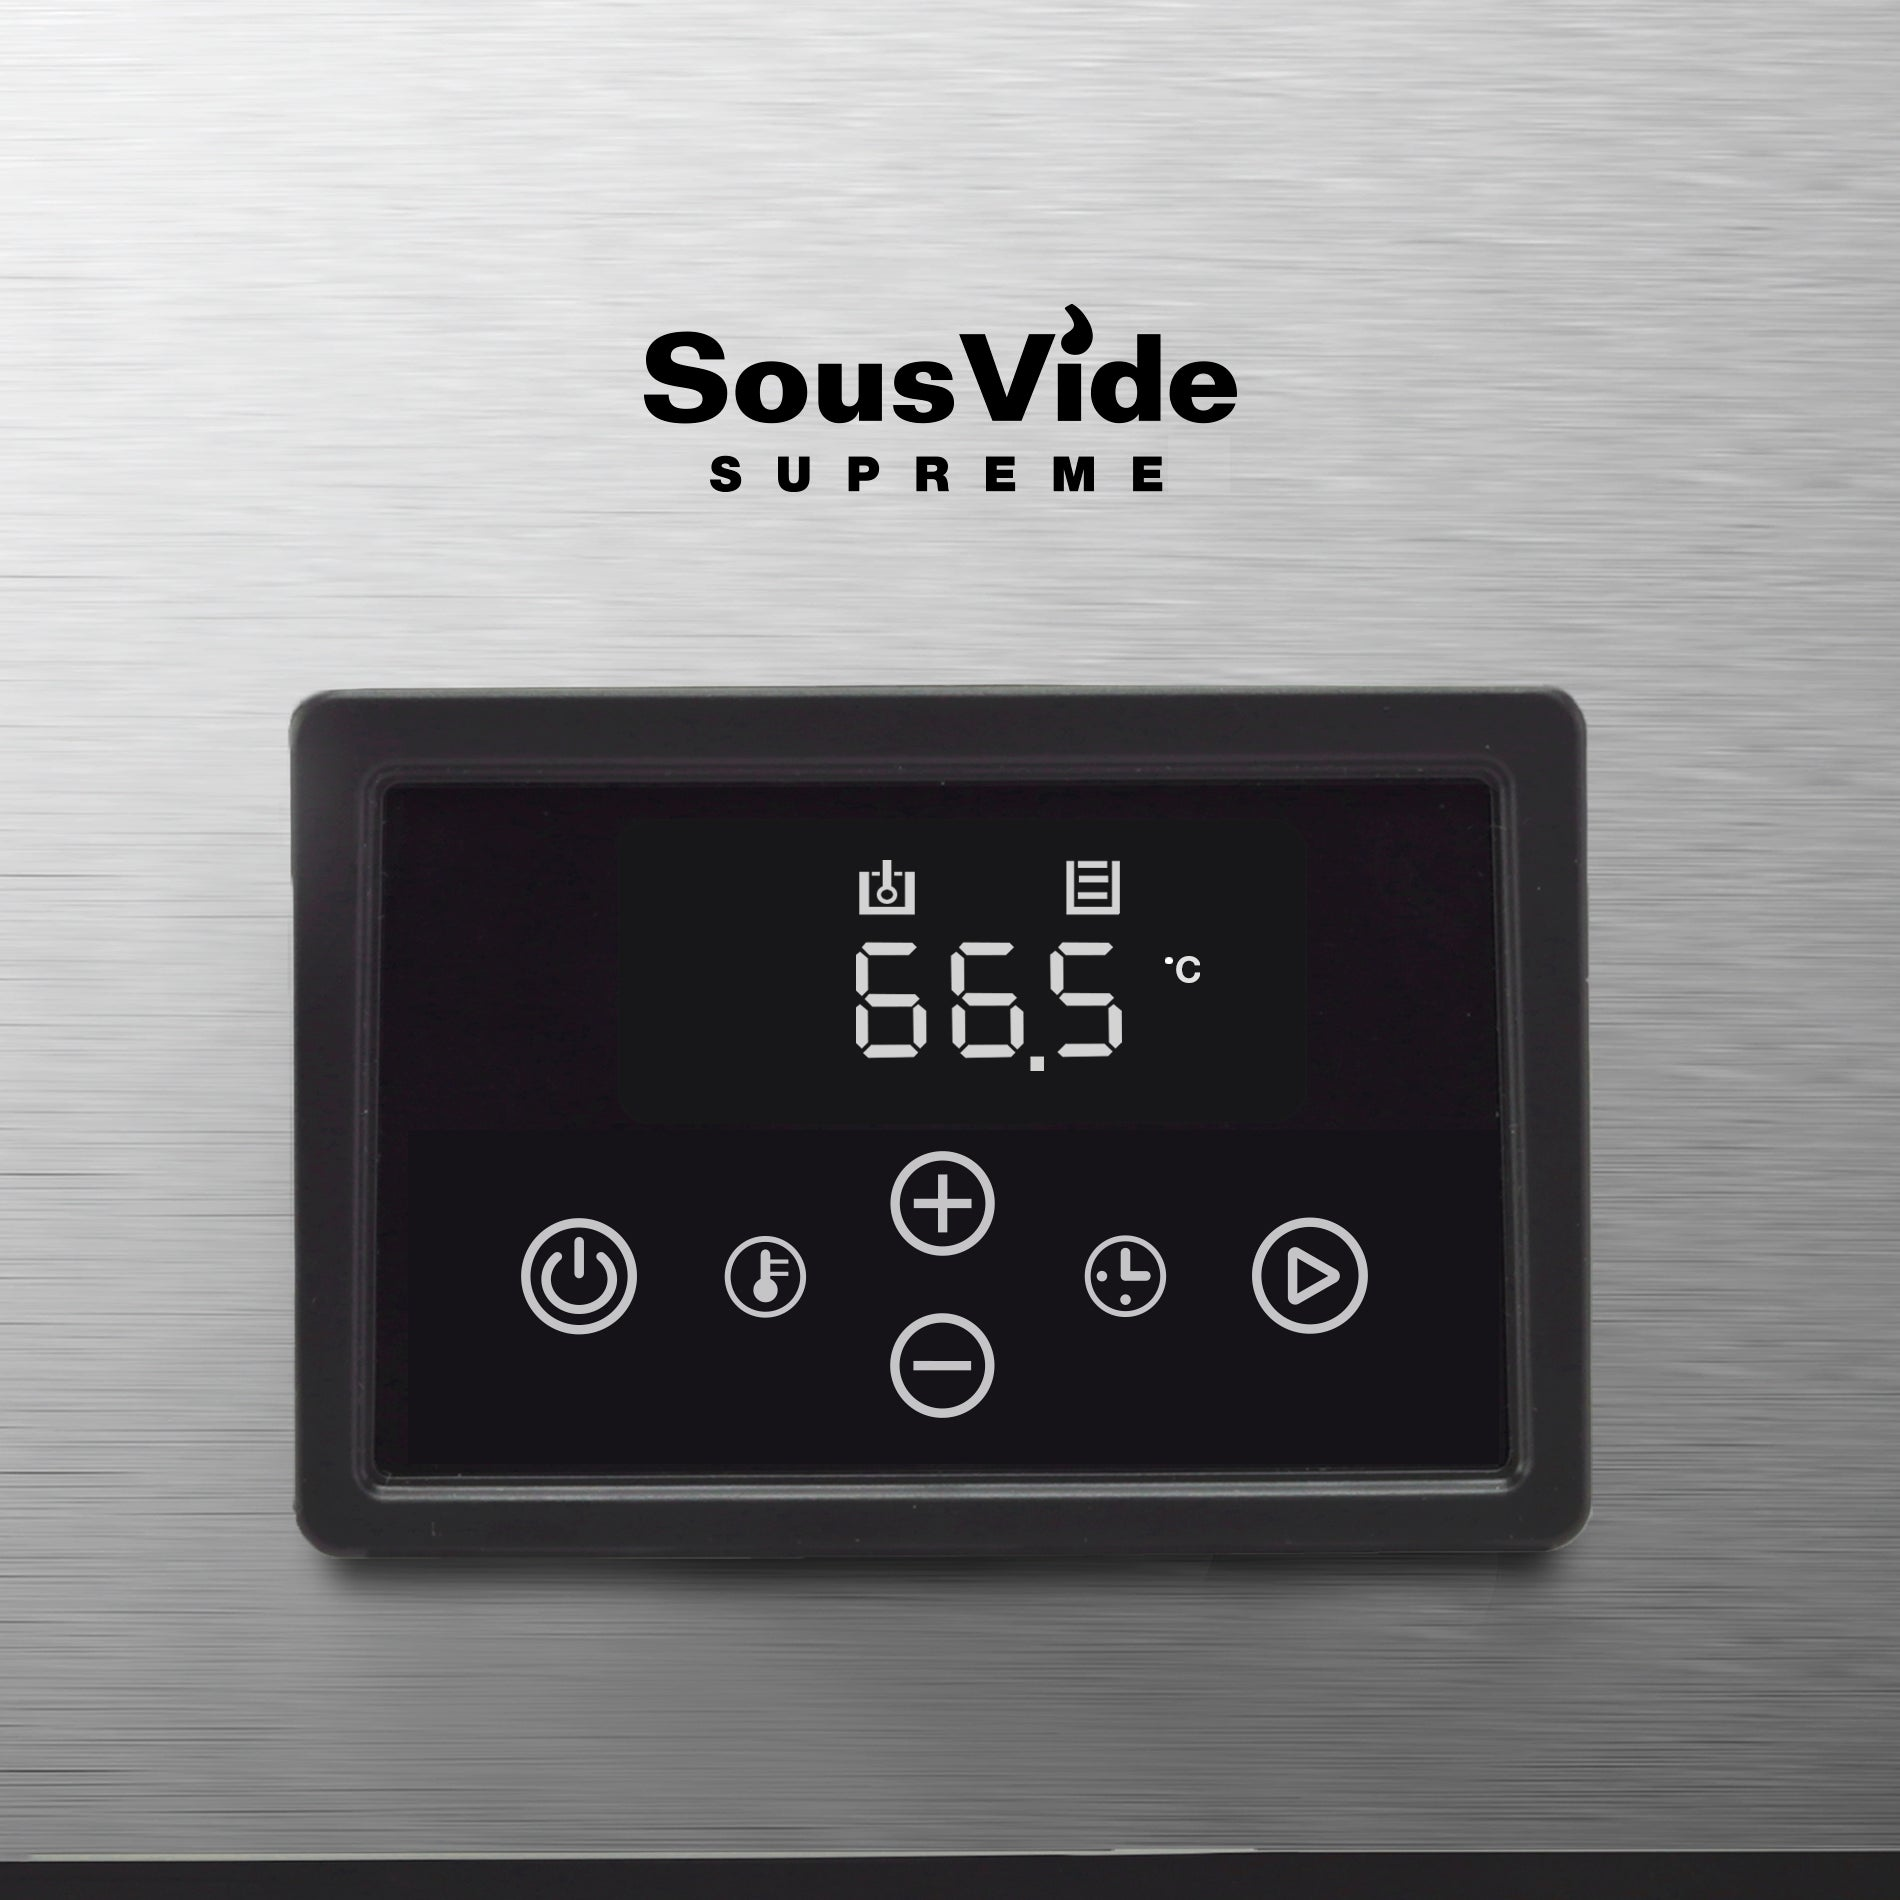 SousVide Supreme Touch water oven touch panel